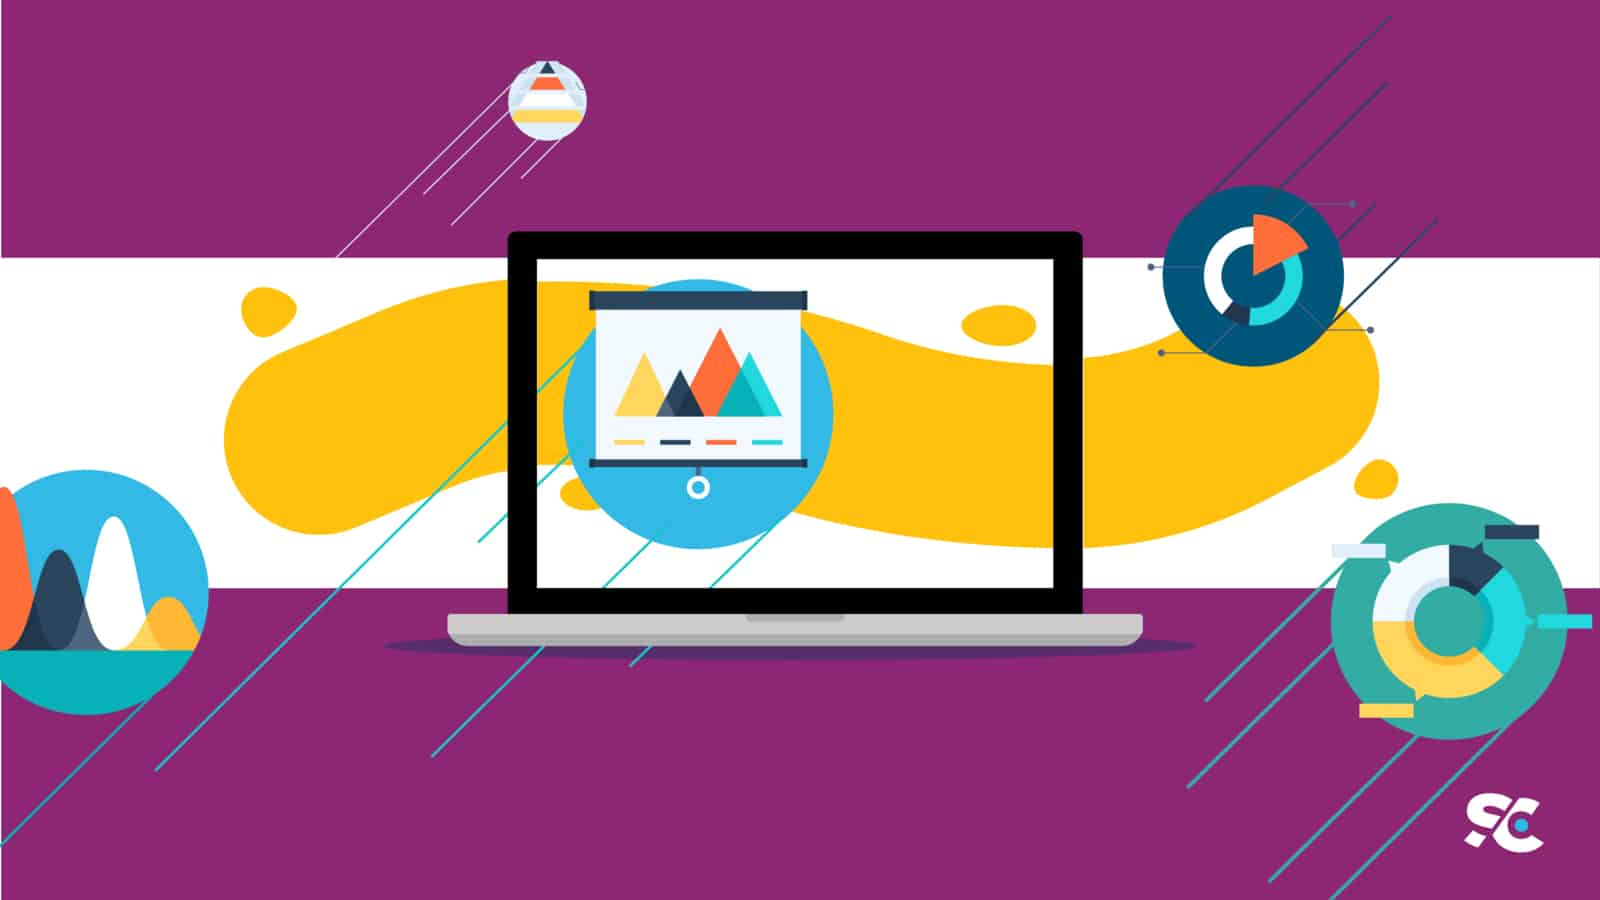 Should You Use Motion Animation in PowerPoint Presentations?